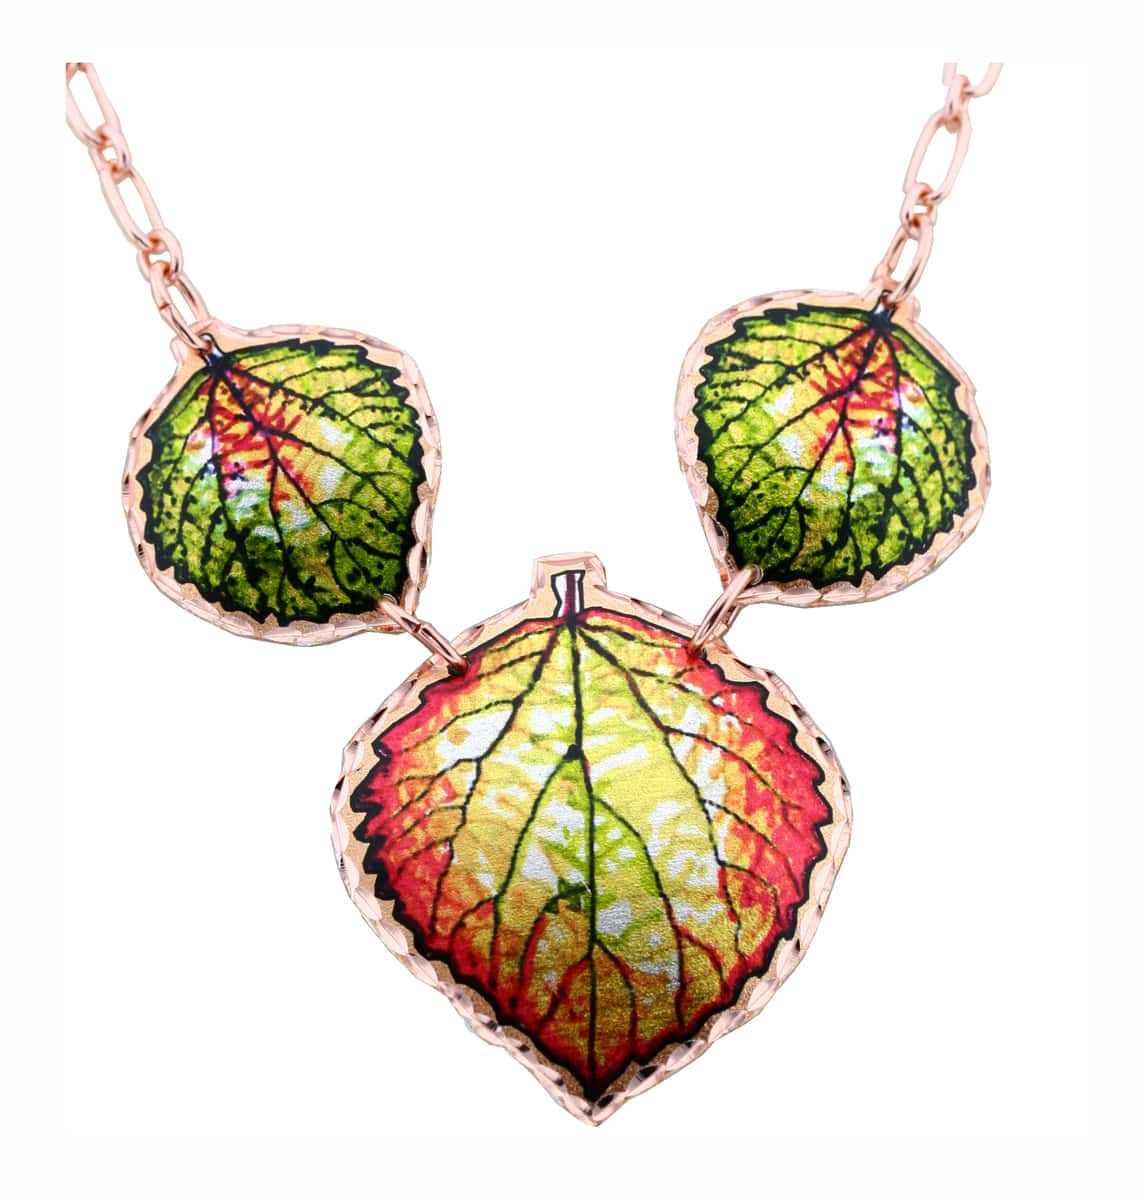 Art Jewelry, Colorful Aspen Leaves Necklaces Handmade from Copper